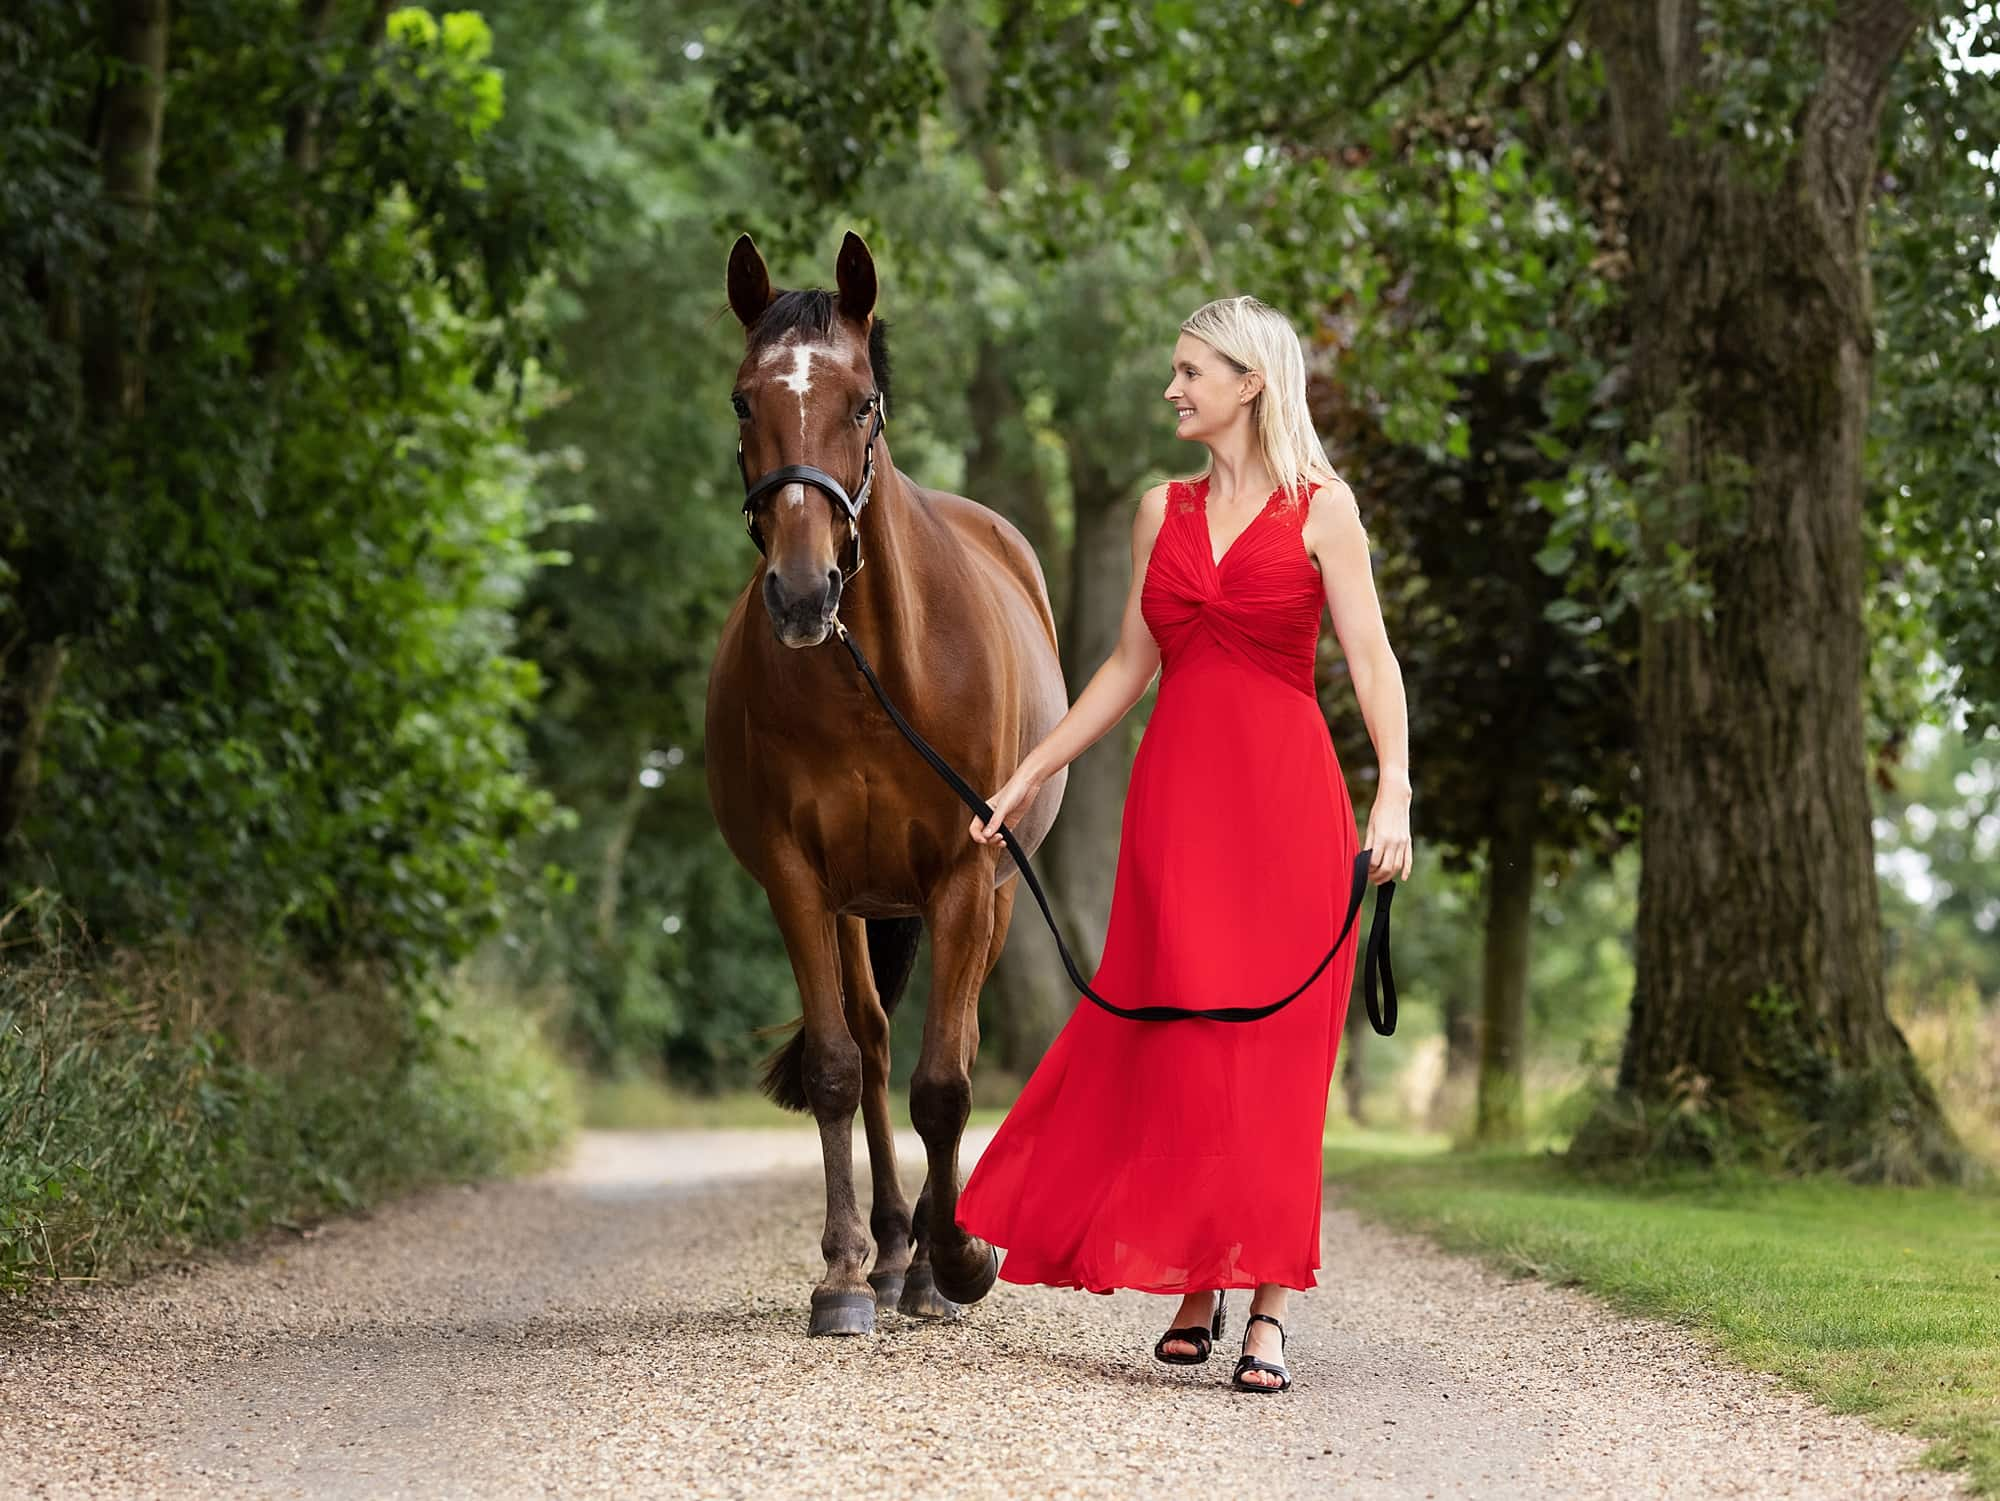 Photograph of a lady in red dress walking her horse on a country lane